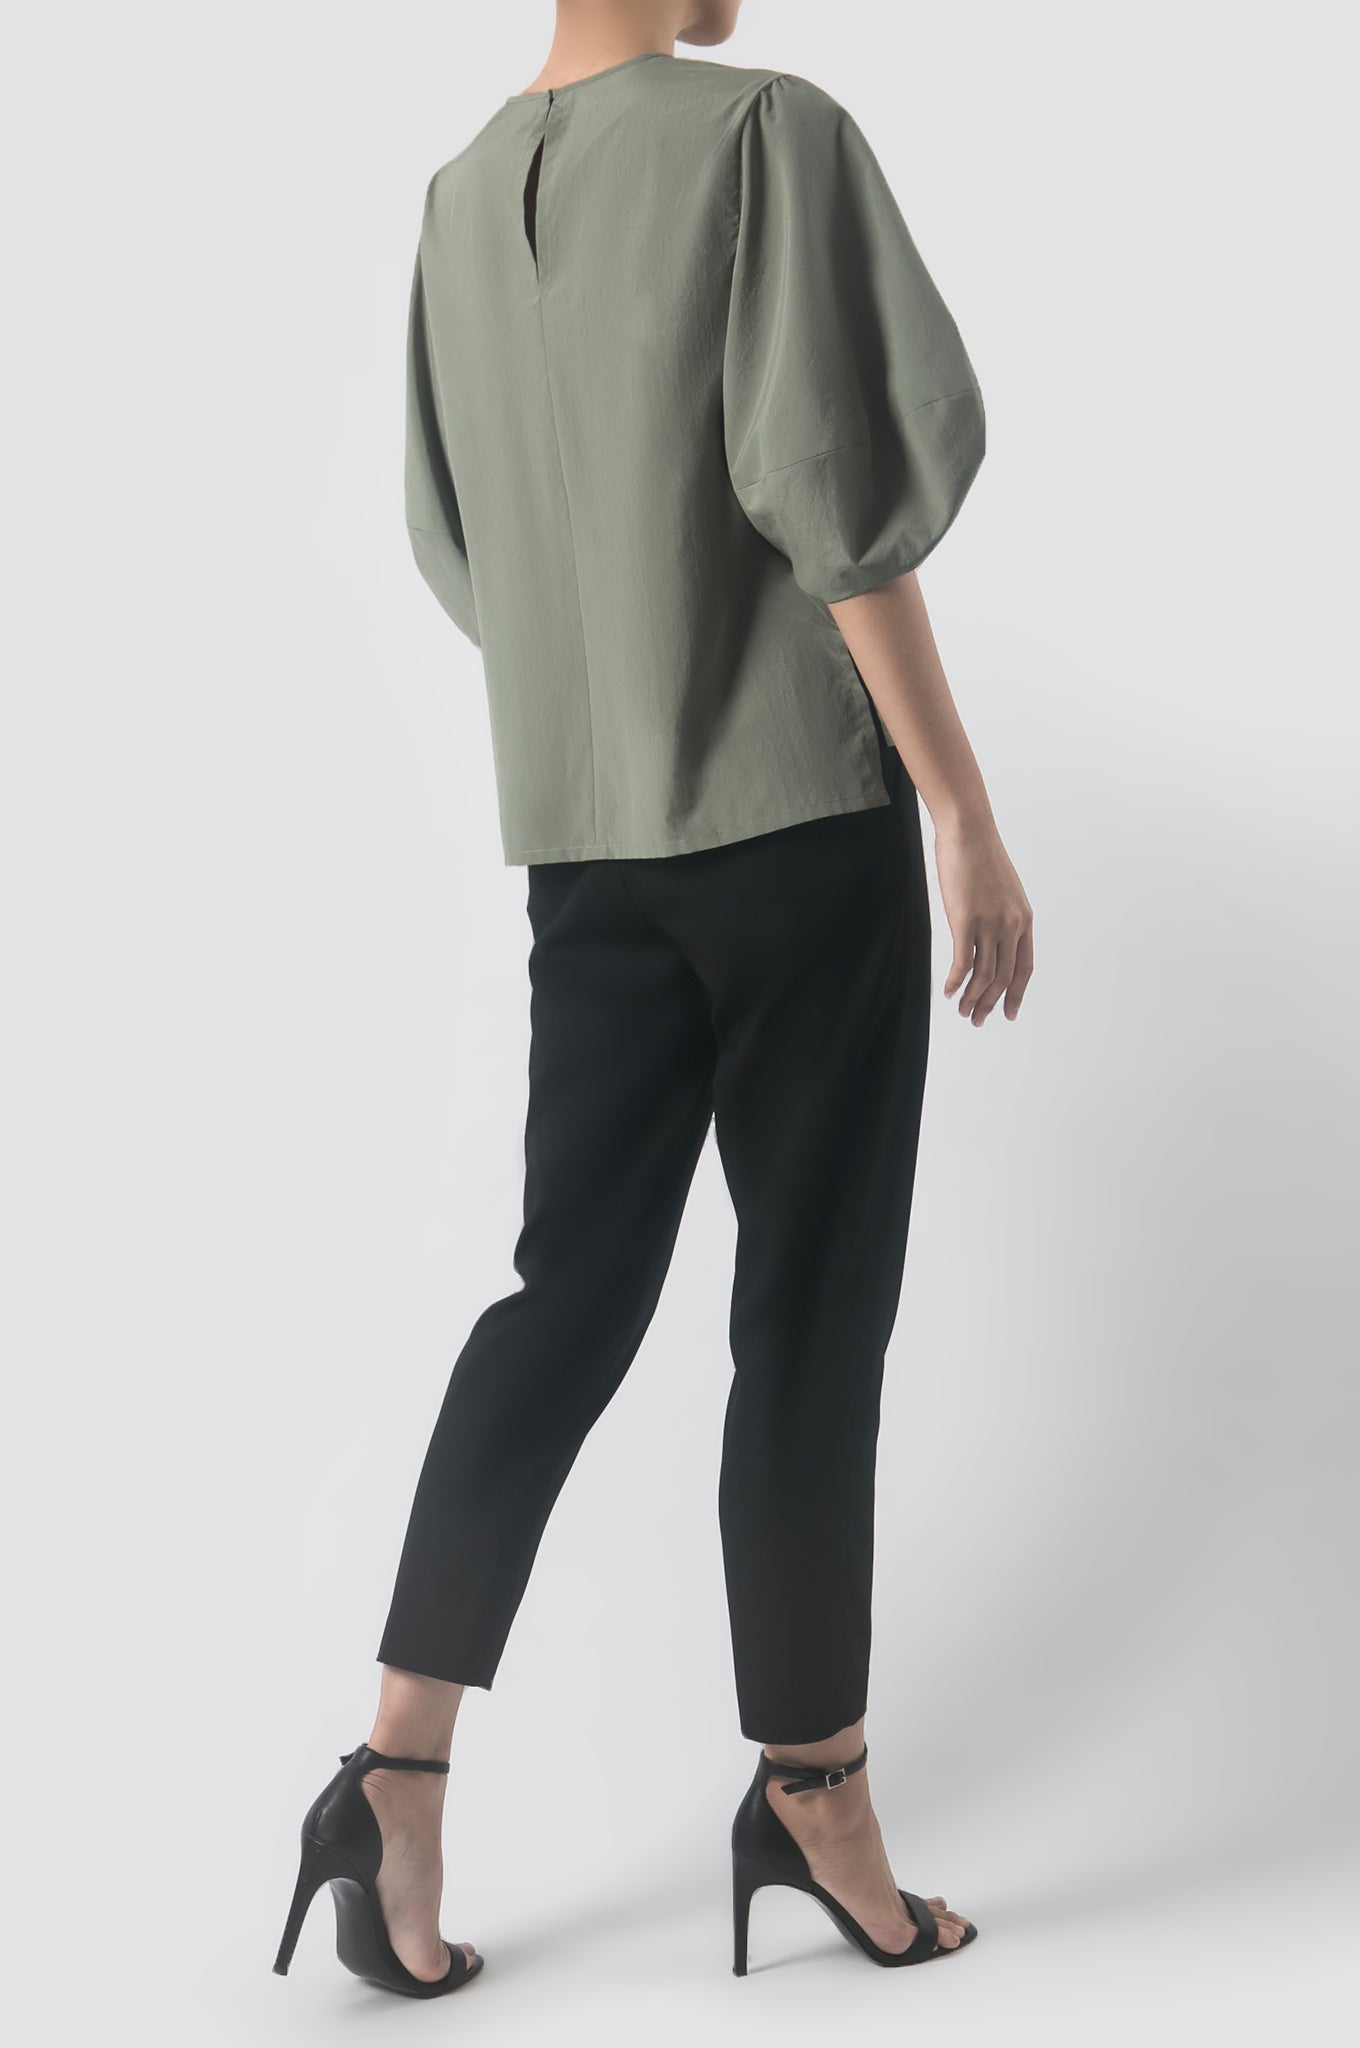 Kelp Green Prey Top